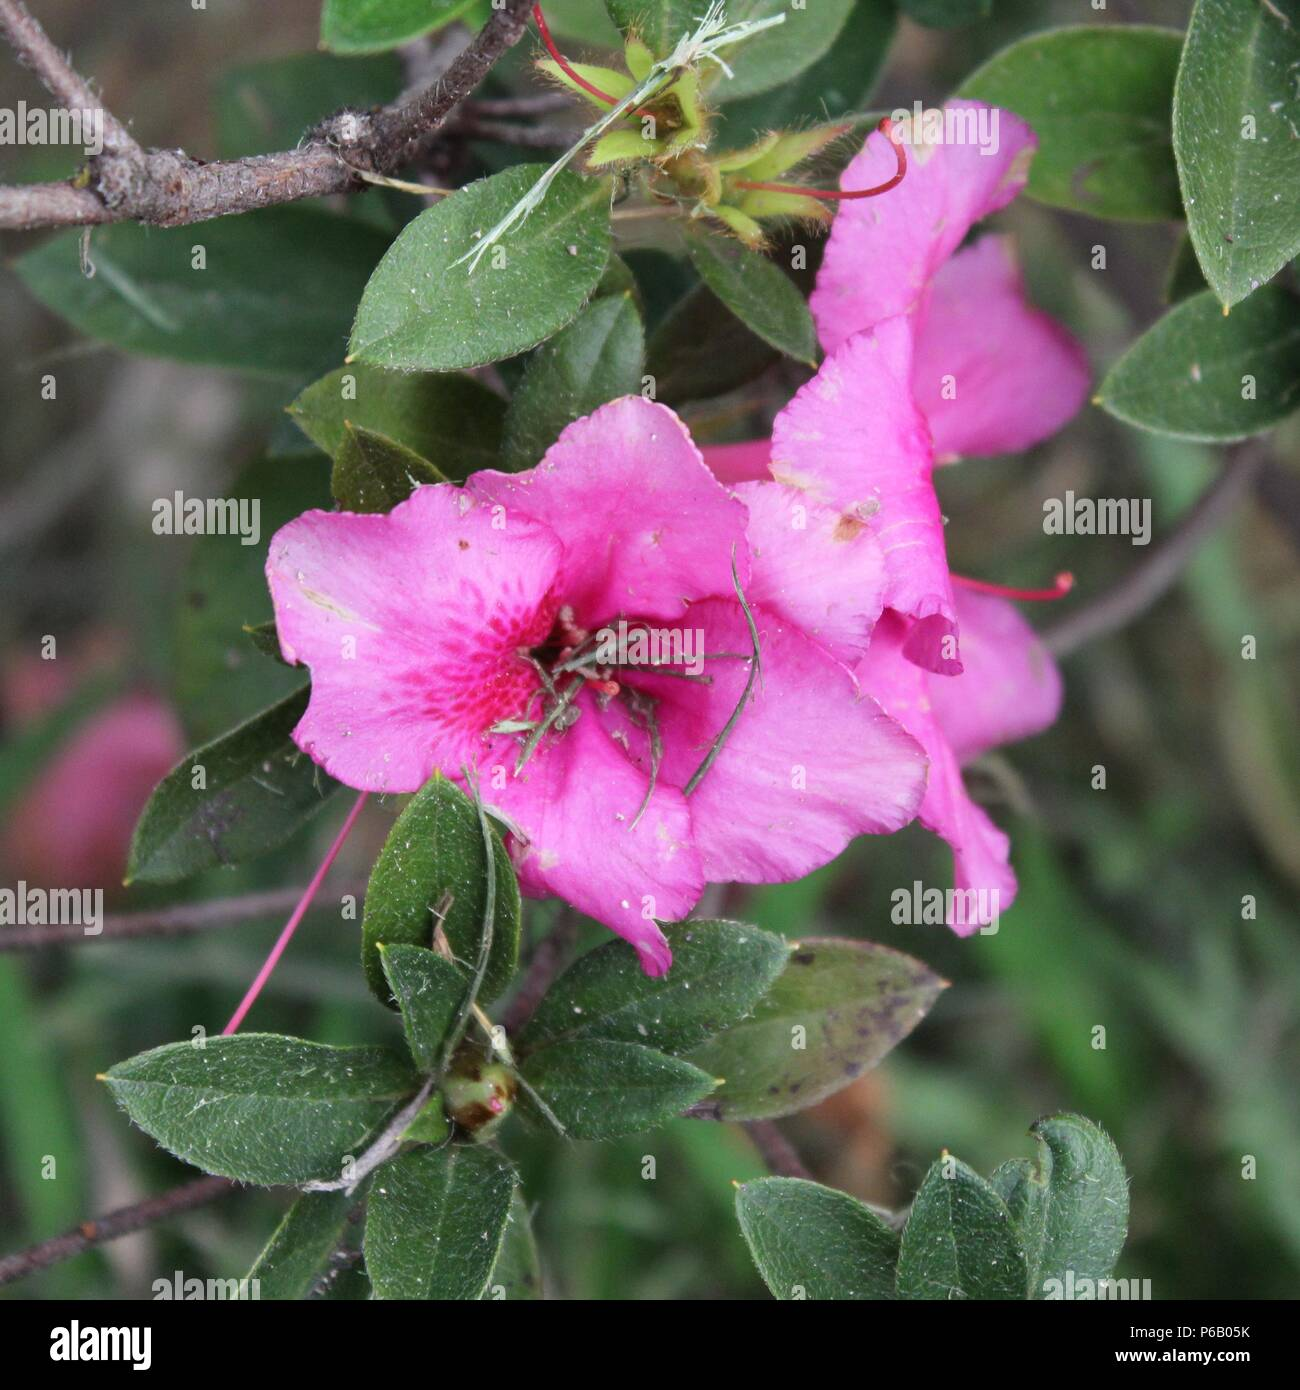 Flower symbolizing nature beauty perfume color decoration flower symbolizing nature beauty perfume color decoration celebrations and cuisinecause they depend on the sun it also represents energy izmirmasajfo